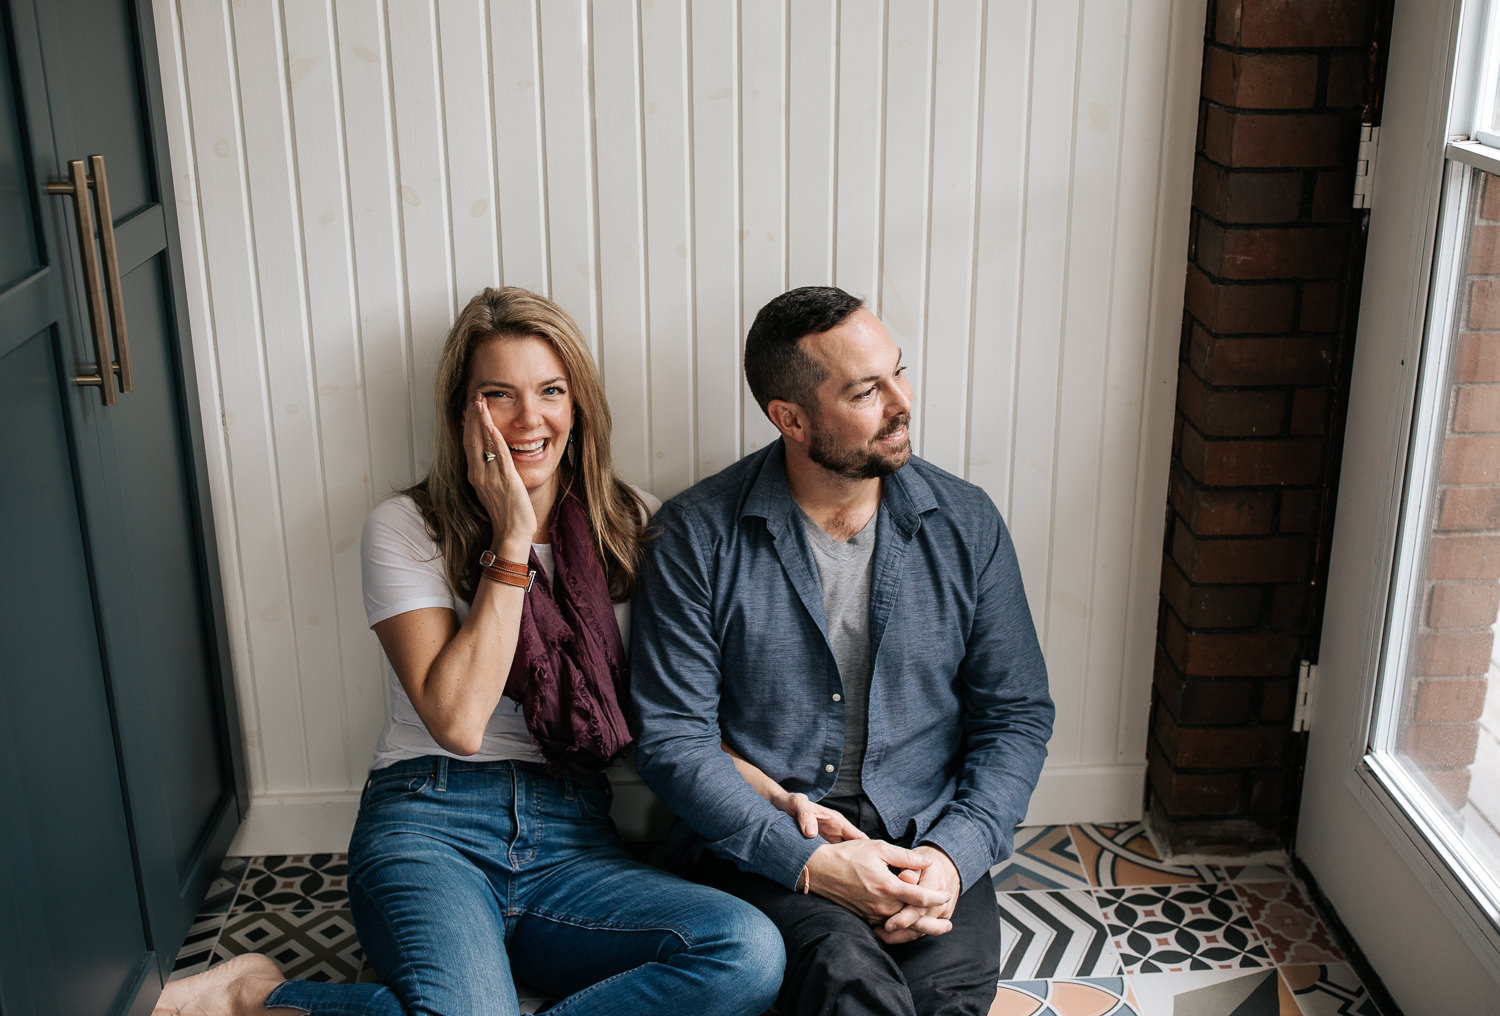 husband and wife sitting on ground of colourful tile, leaning against wall, arms linked, holding hands, man looking to side, woman's hand on cheek smiling at camera  -  York Region Lifestyle Photos